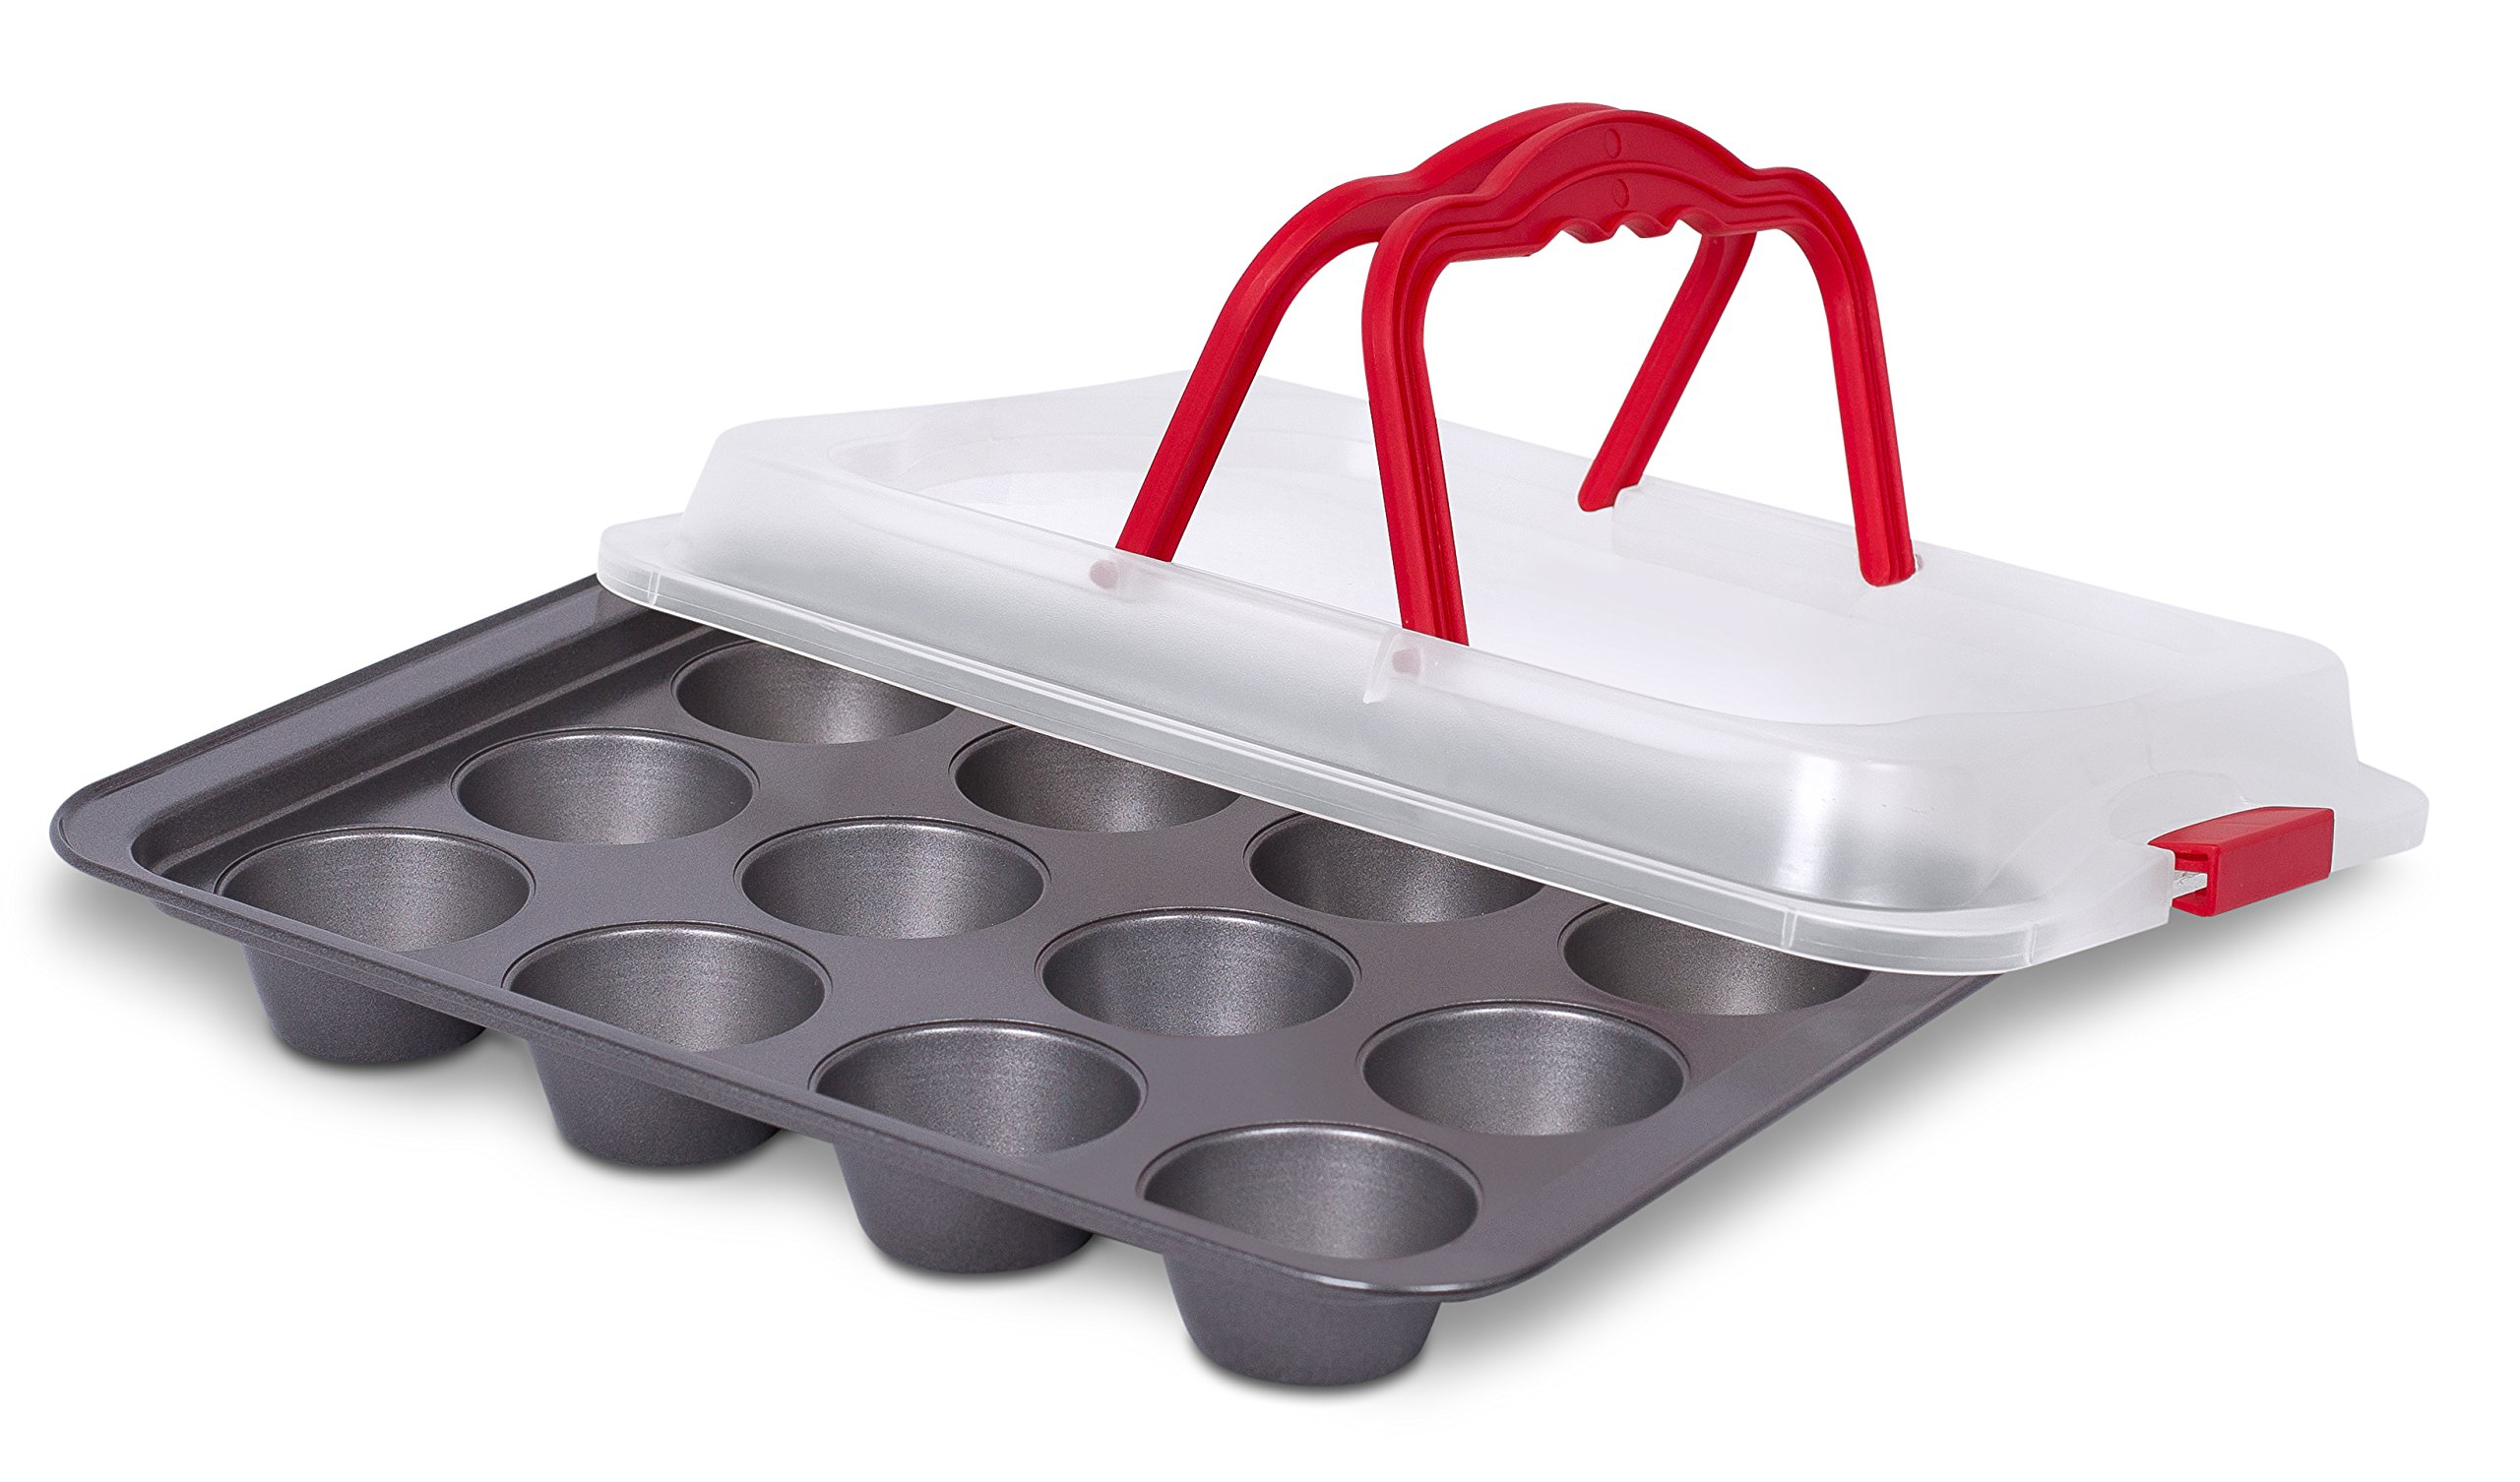 Internet's Best Cupcake Baking Pan with Lid and Handles | 12 Cup | Non-Stick Muffin Tray with Cover | Dishwasher Safe | Red & Grey